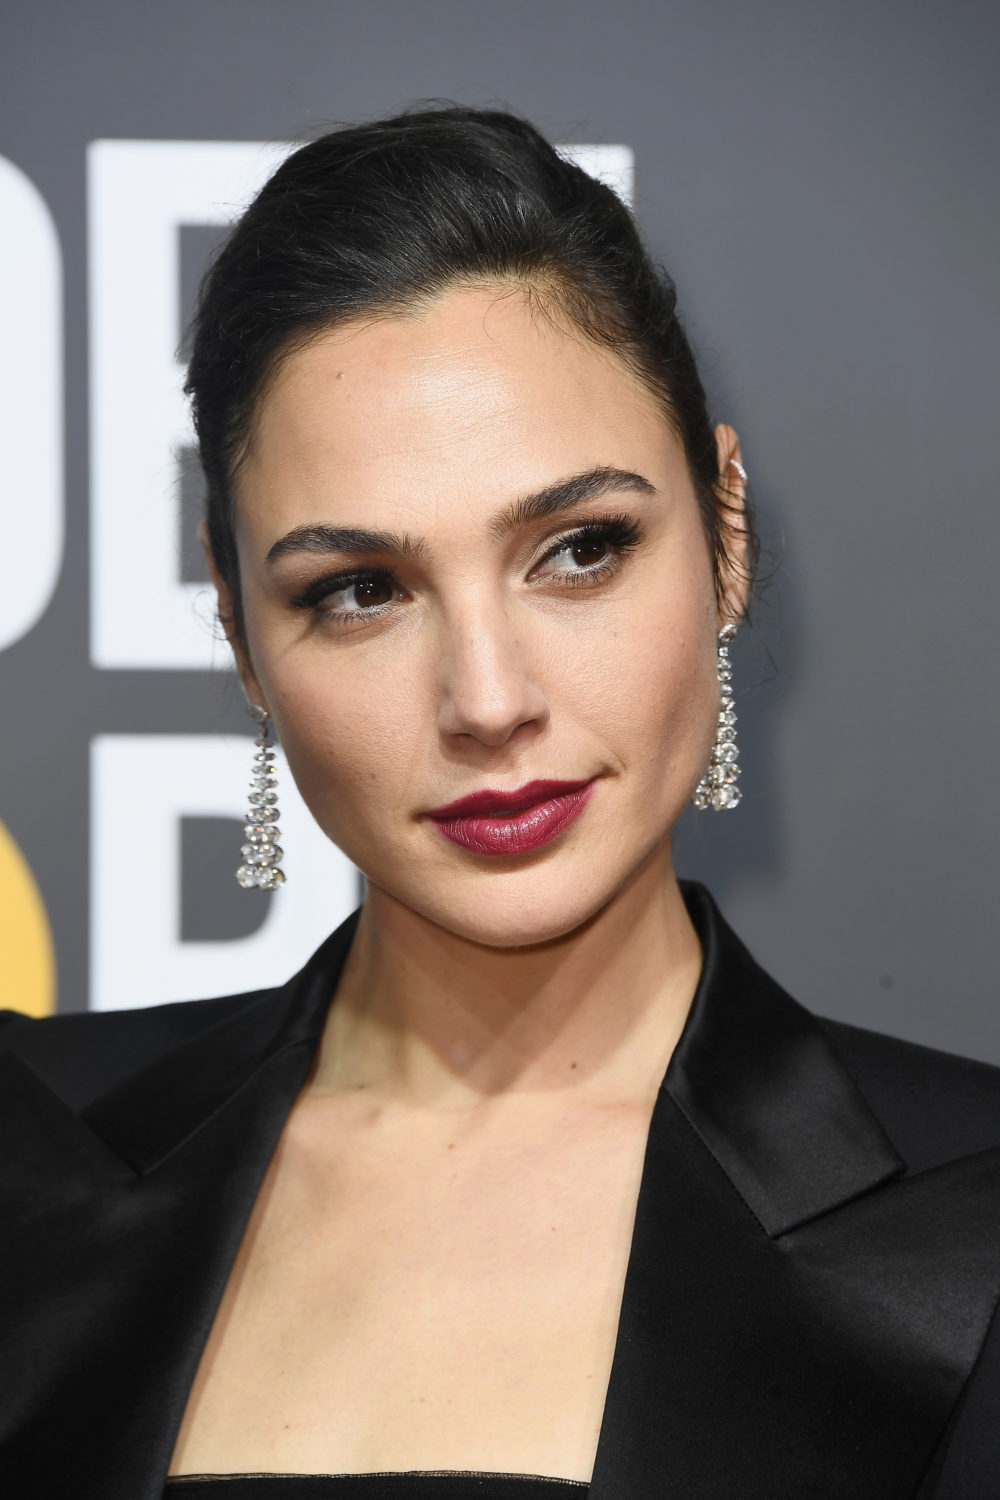 Gal Gadot nudes (15 photo) Tits, Instagram, butt